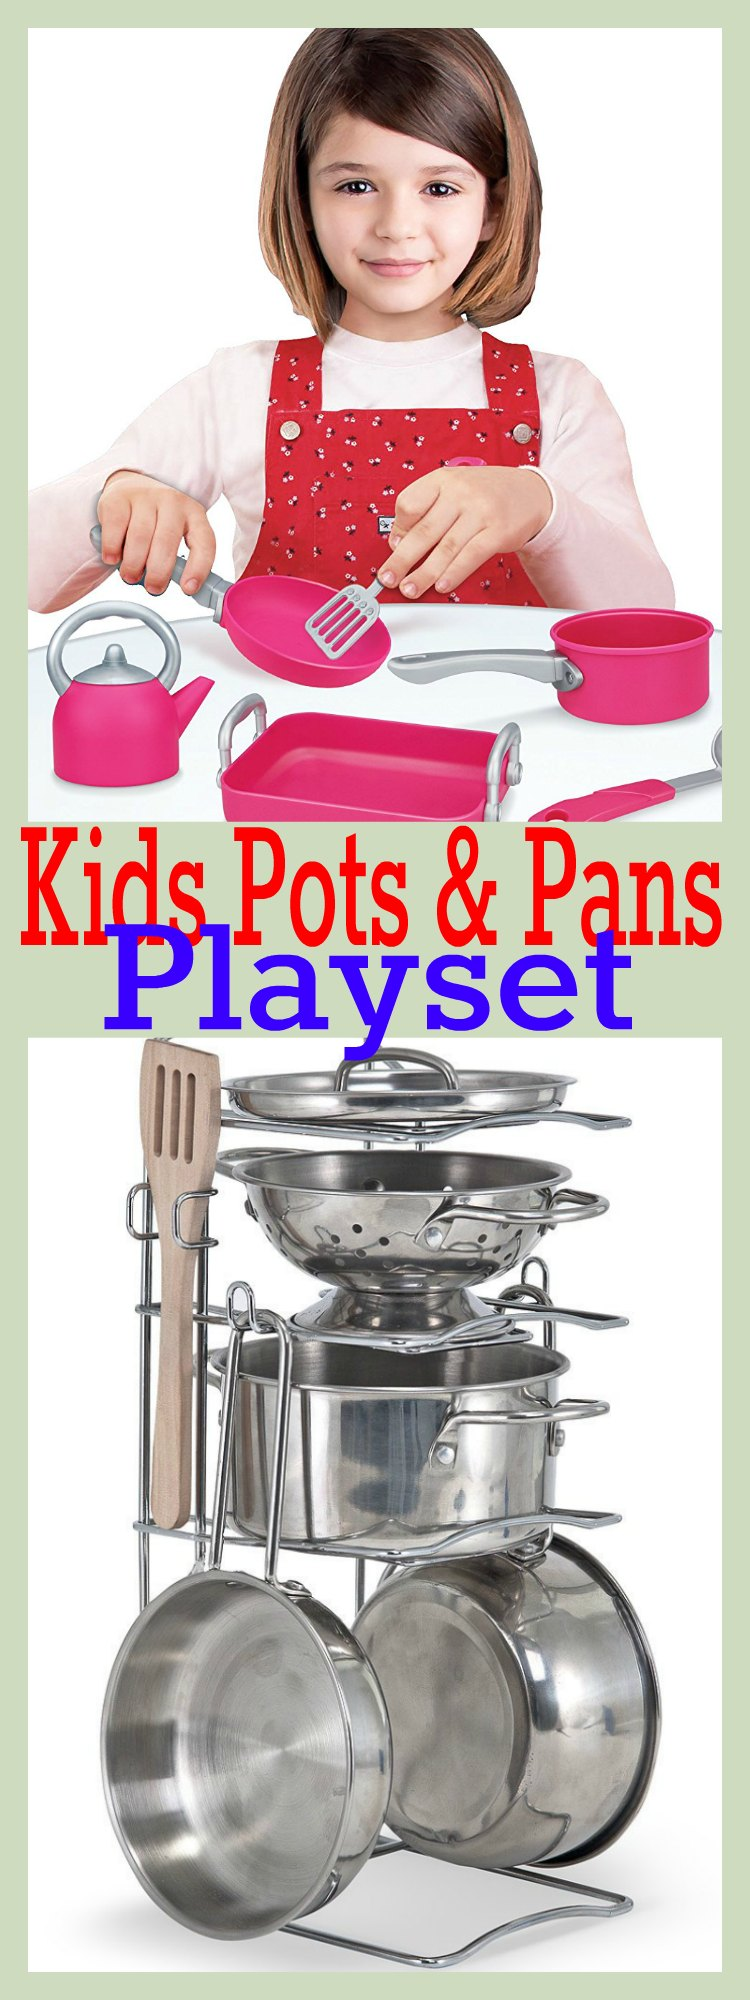 Kids Pots and Pans Playset